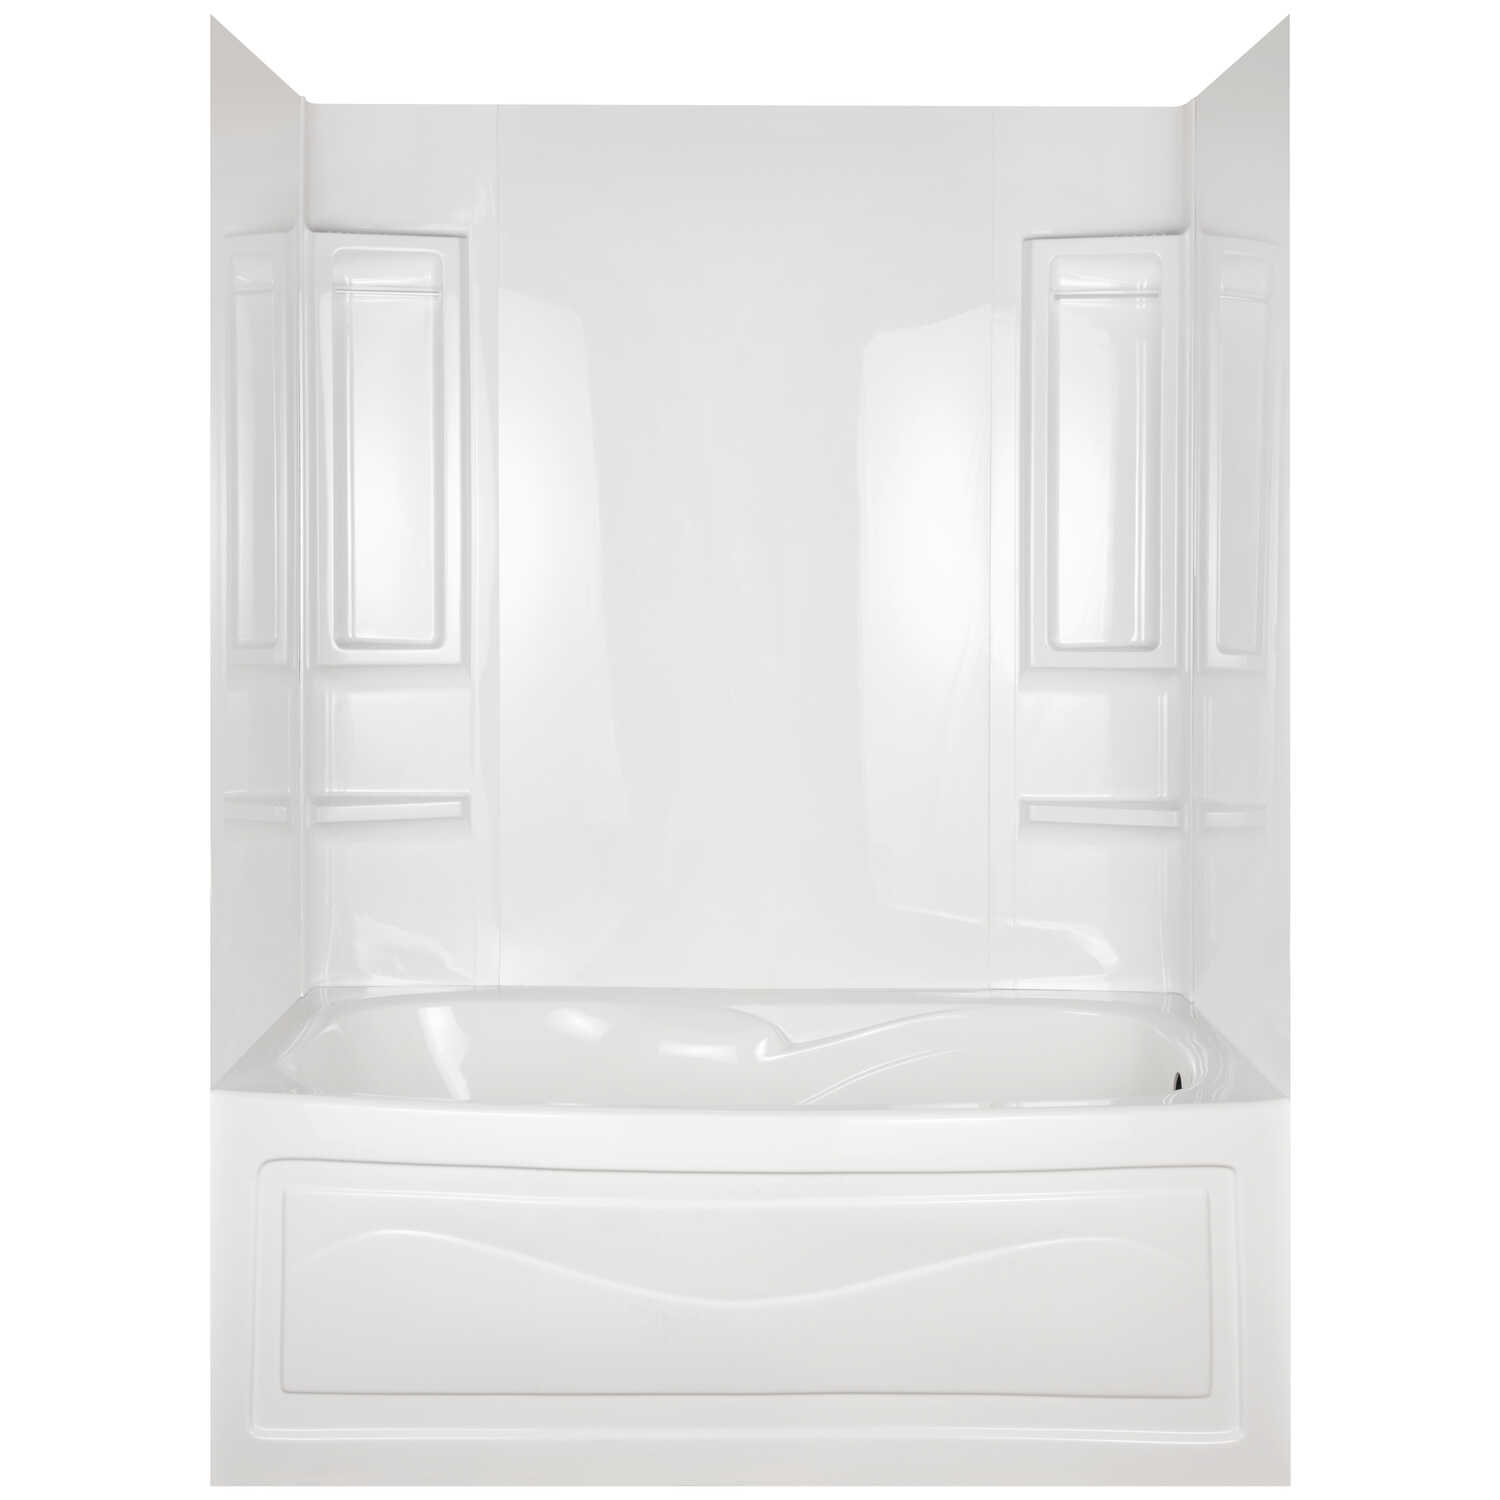 ASB  Vantage  60 in. H x 60 in. W x 27.5 in. L White  Five Piece  Right Hand  Bathtub Wall